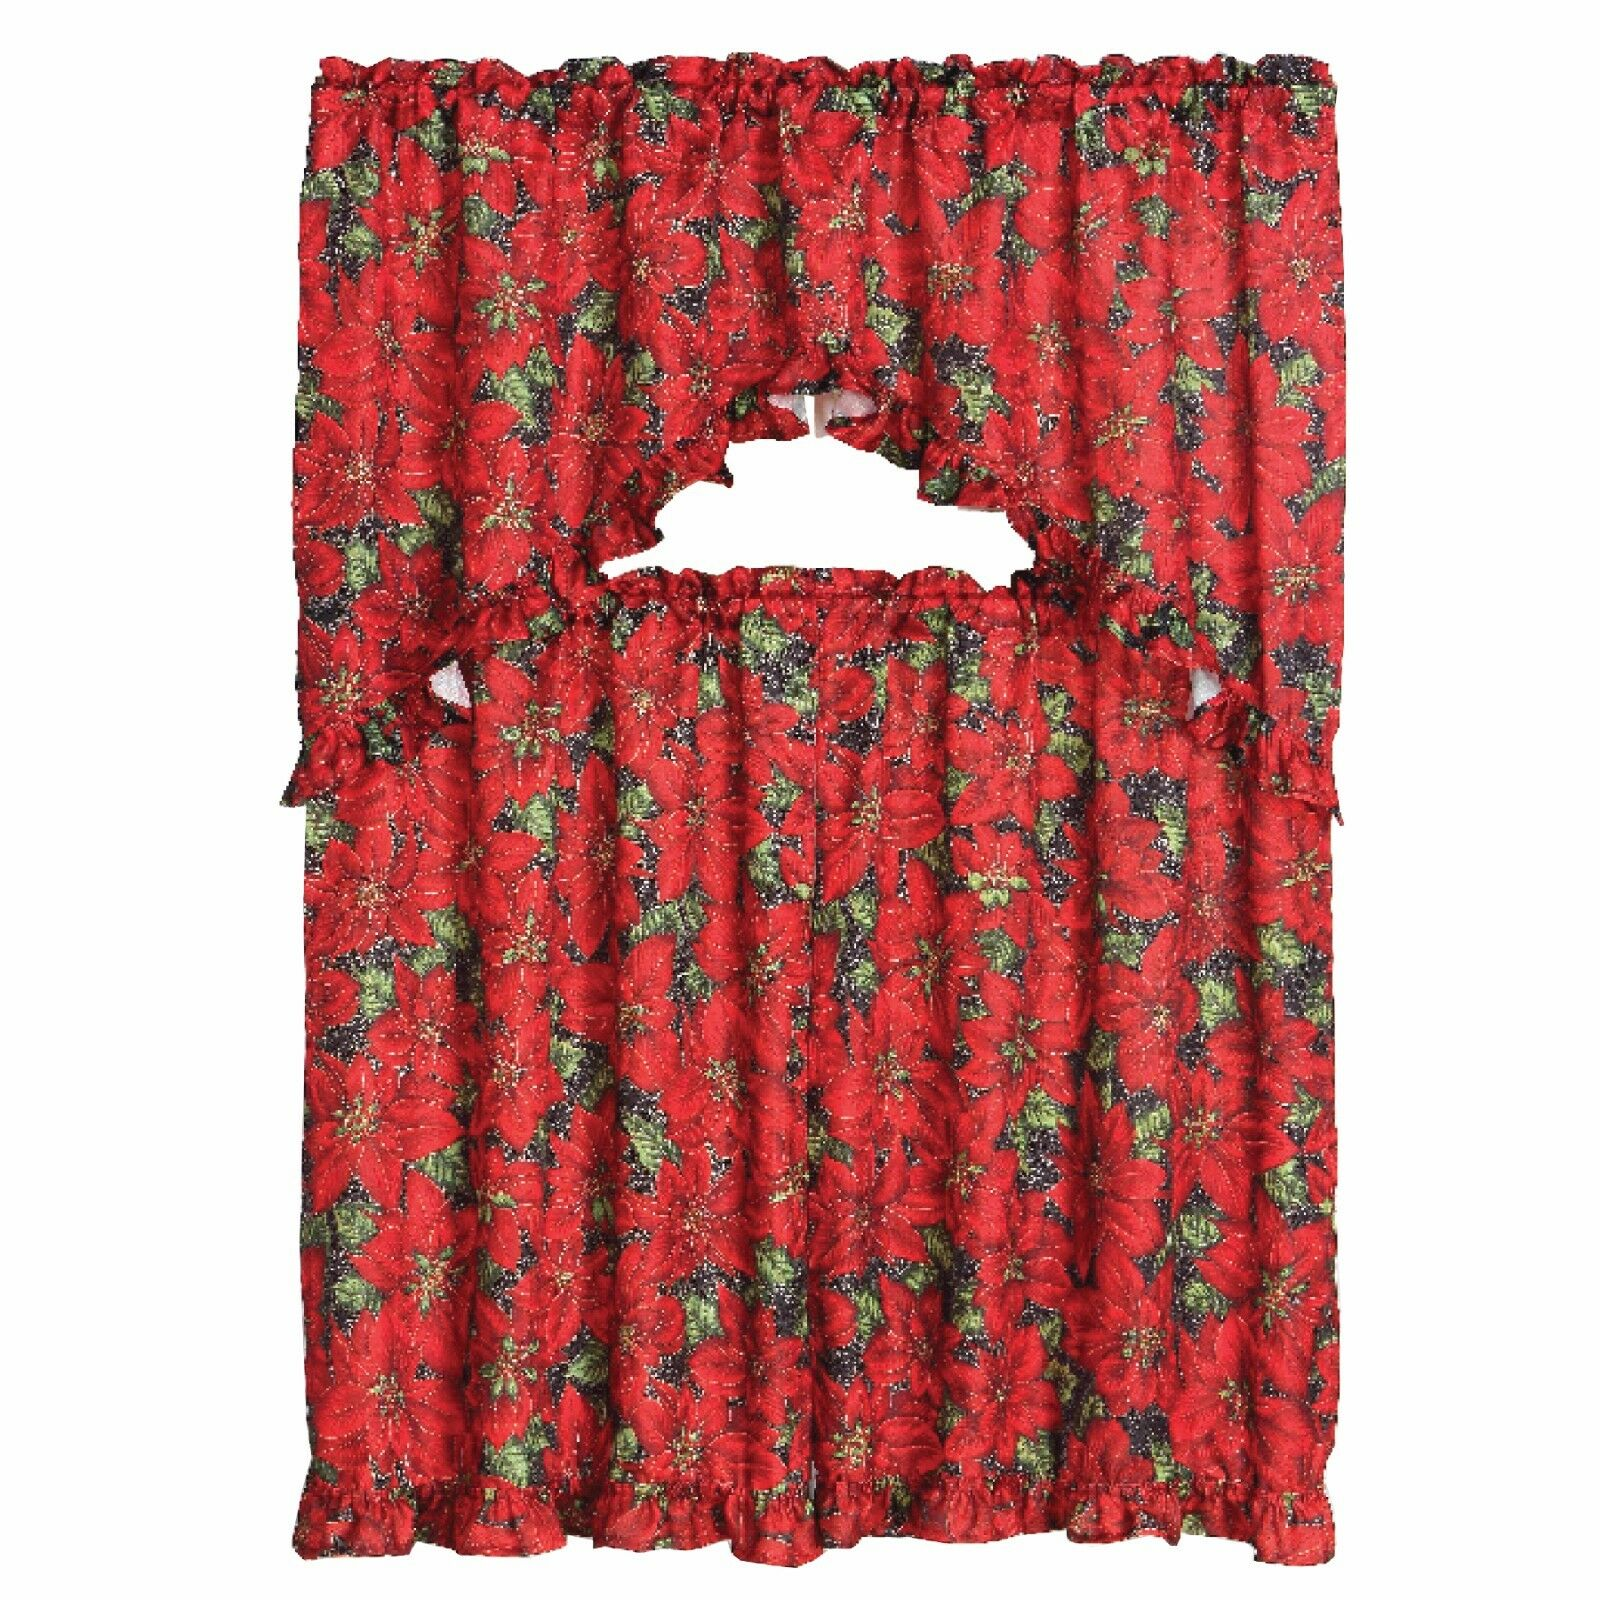 Kitchen Curtains And Valances: 3 Piece Christmas Decorative Kitchen Curtain Set, Ruffled